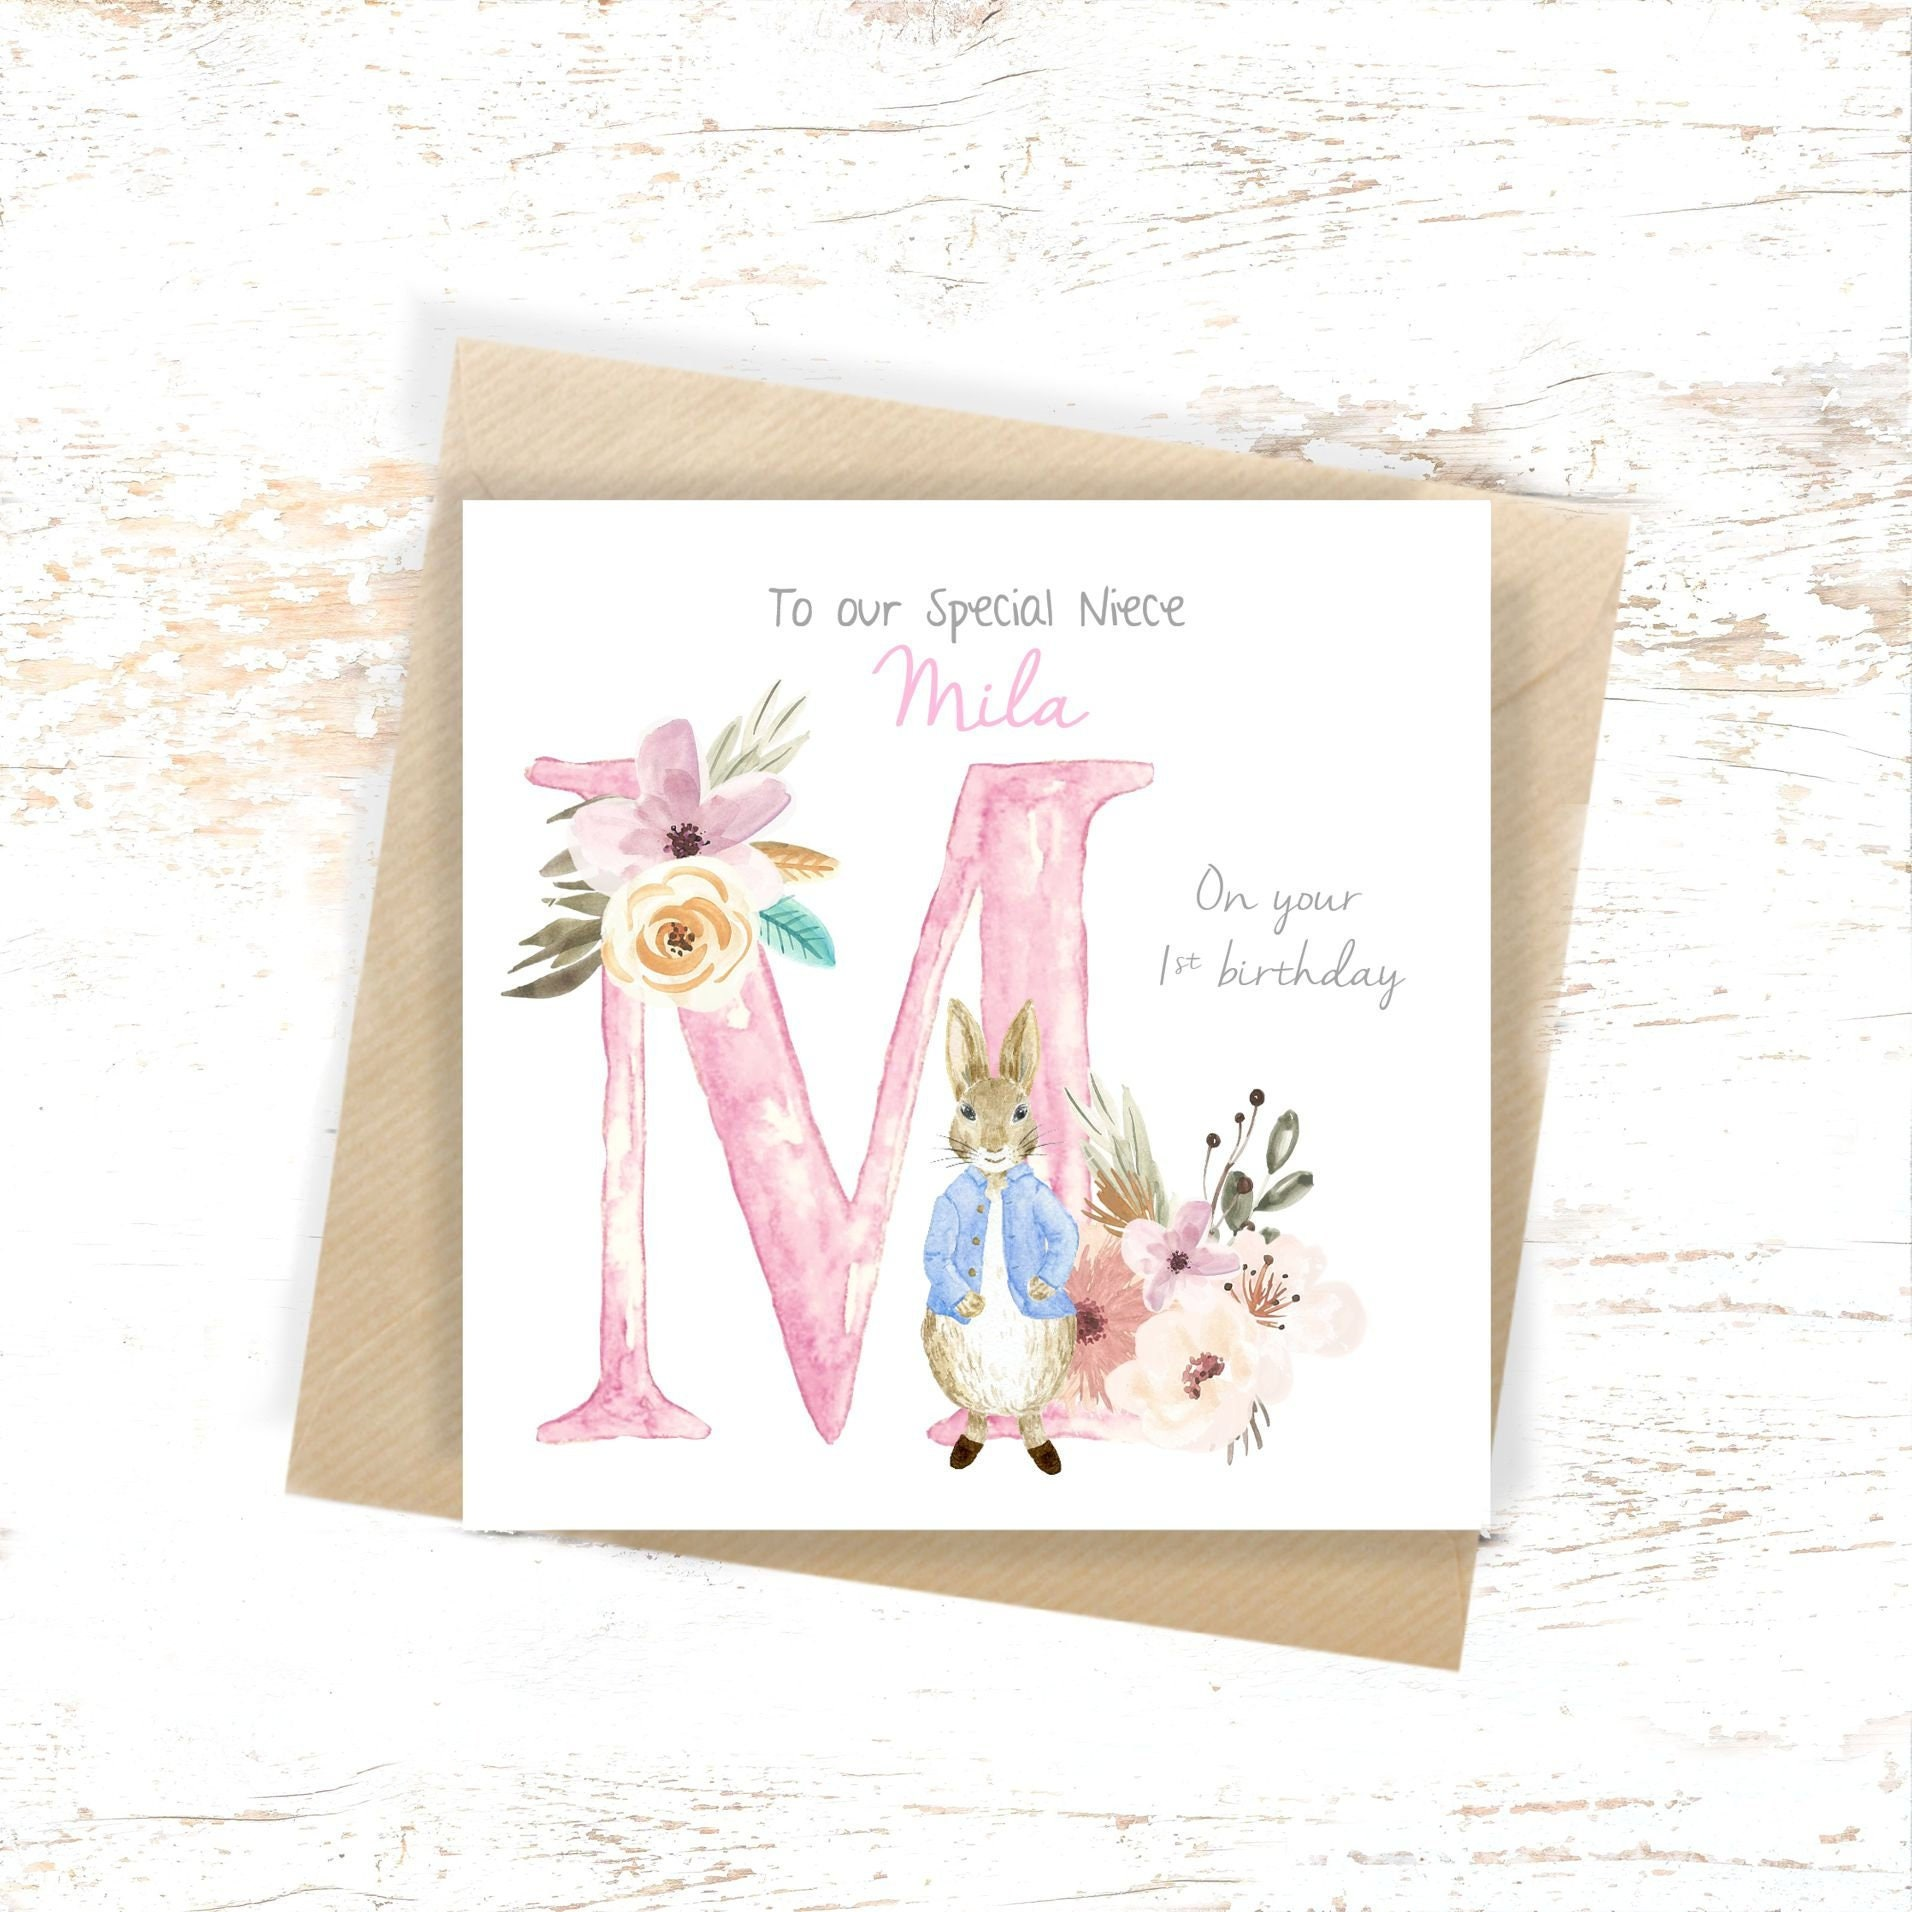 1st Birthday Card Personalised Peter Rabbit 2nd